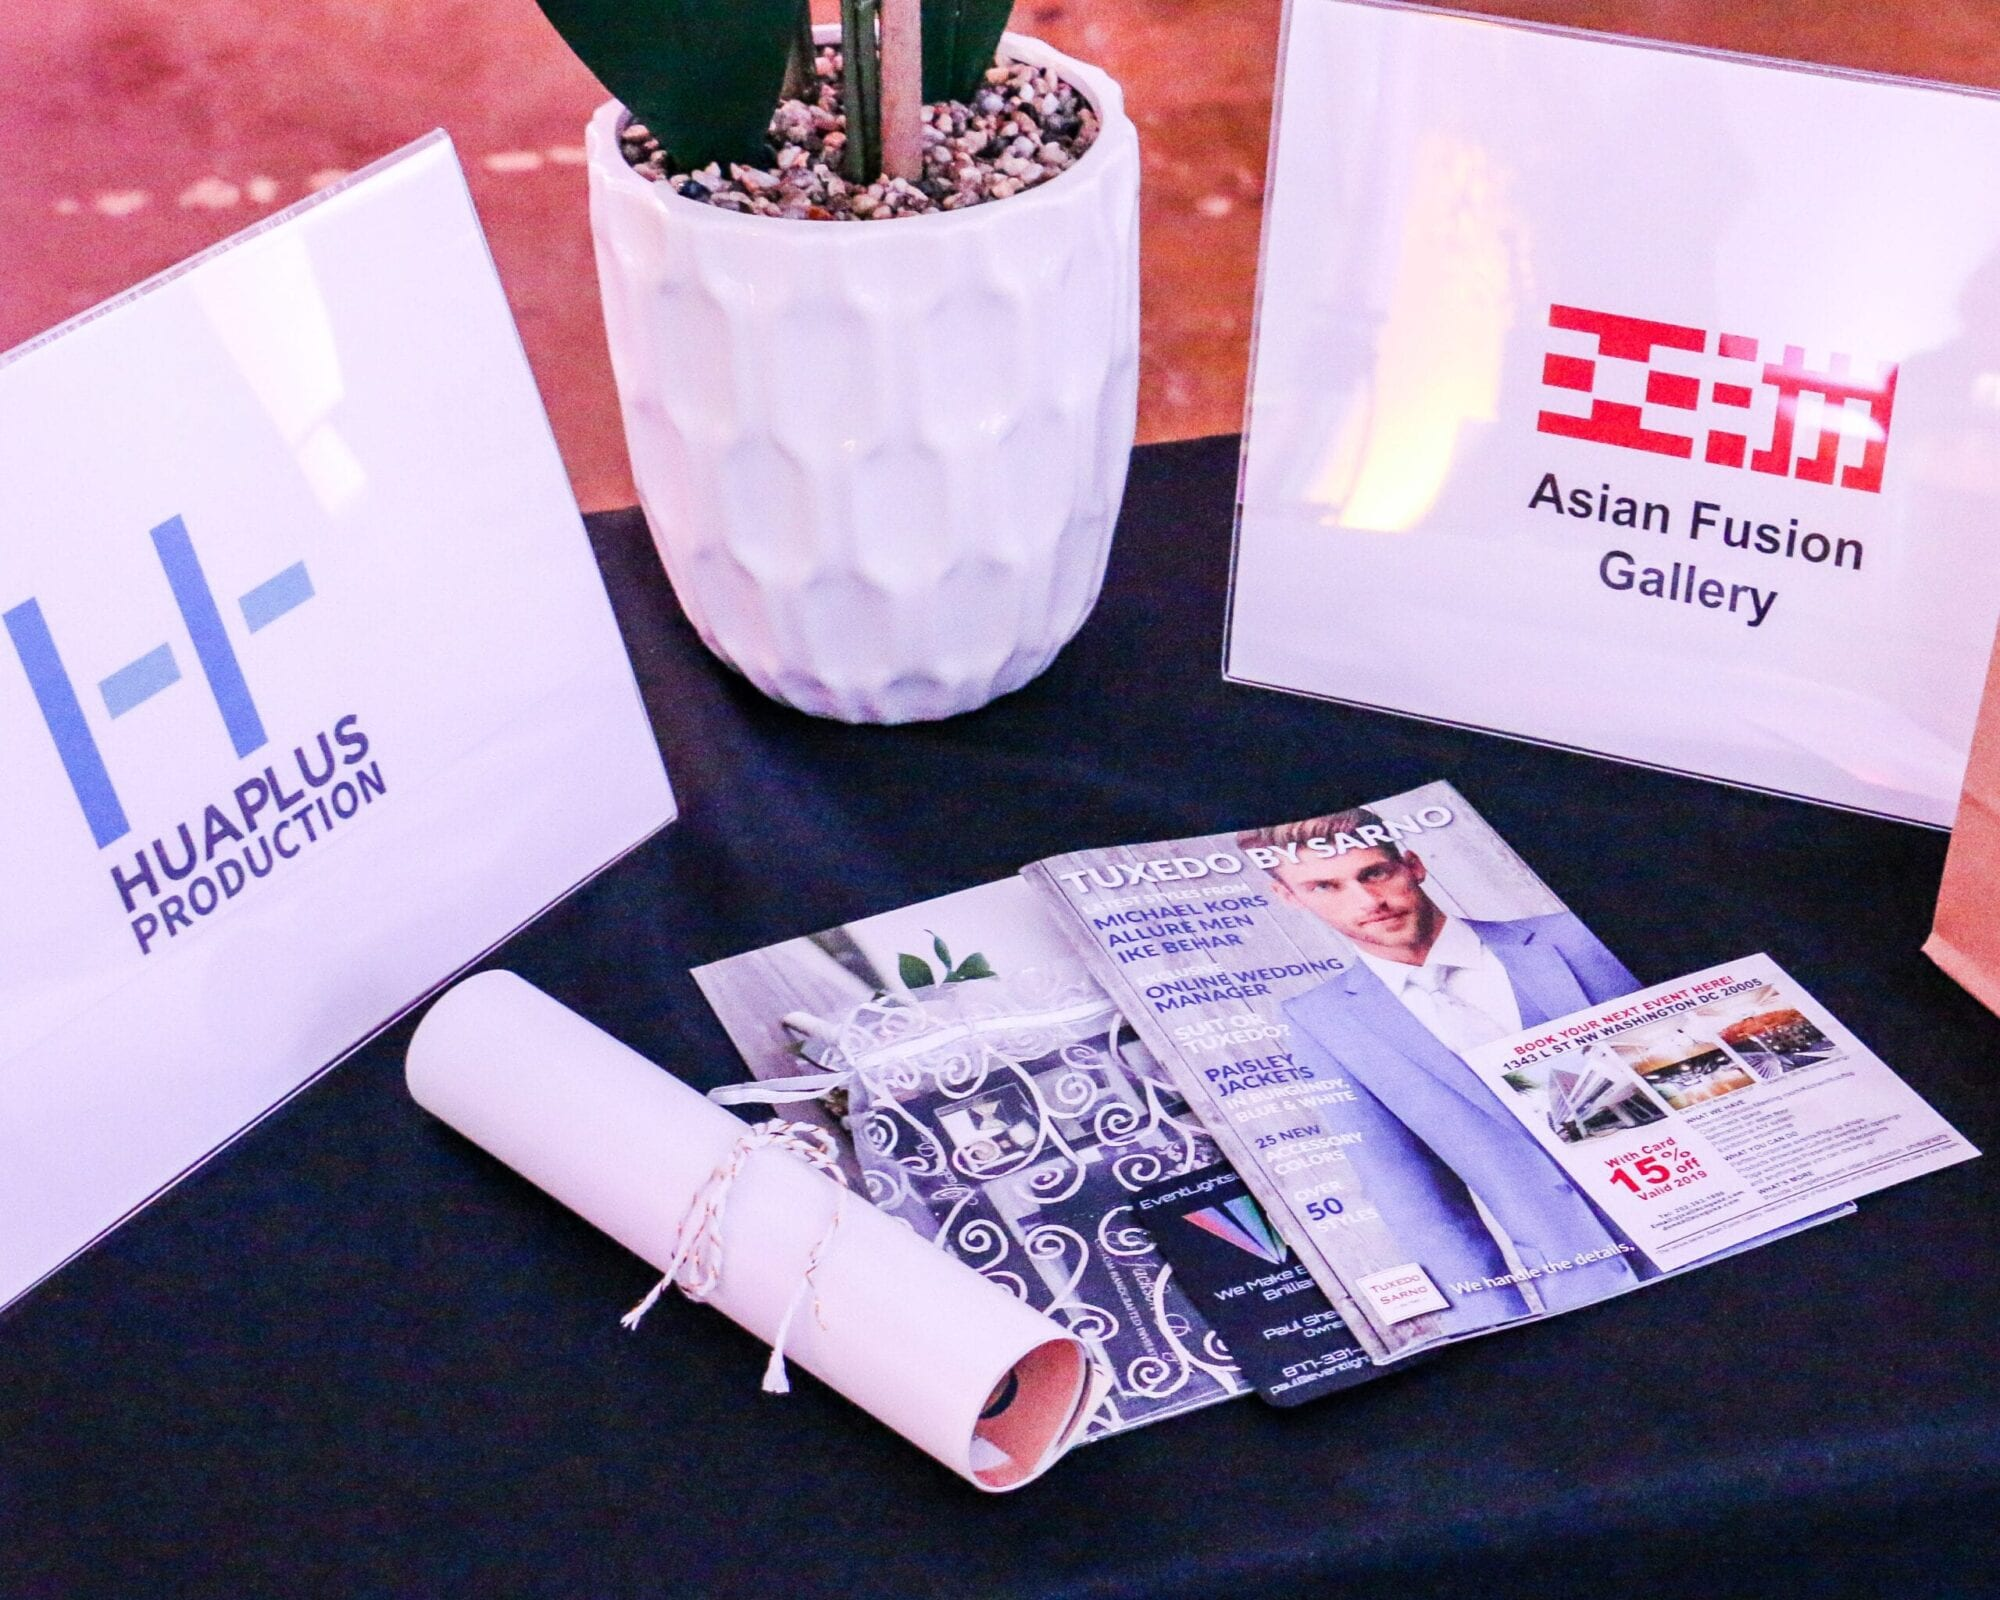 Asian Fusion Gallery in Washington DC hosted the District Bliss Vendor Social, a light-hearted, welcoming, casual networking event